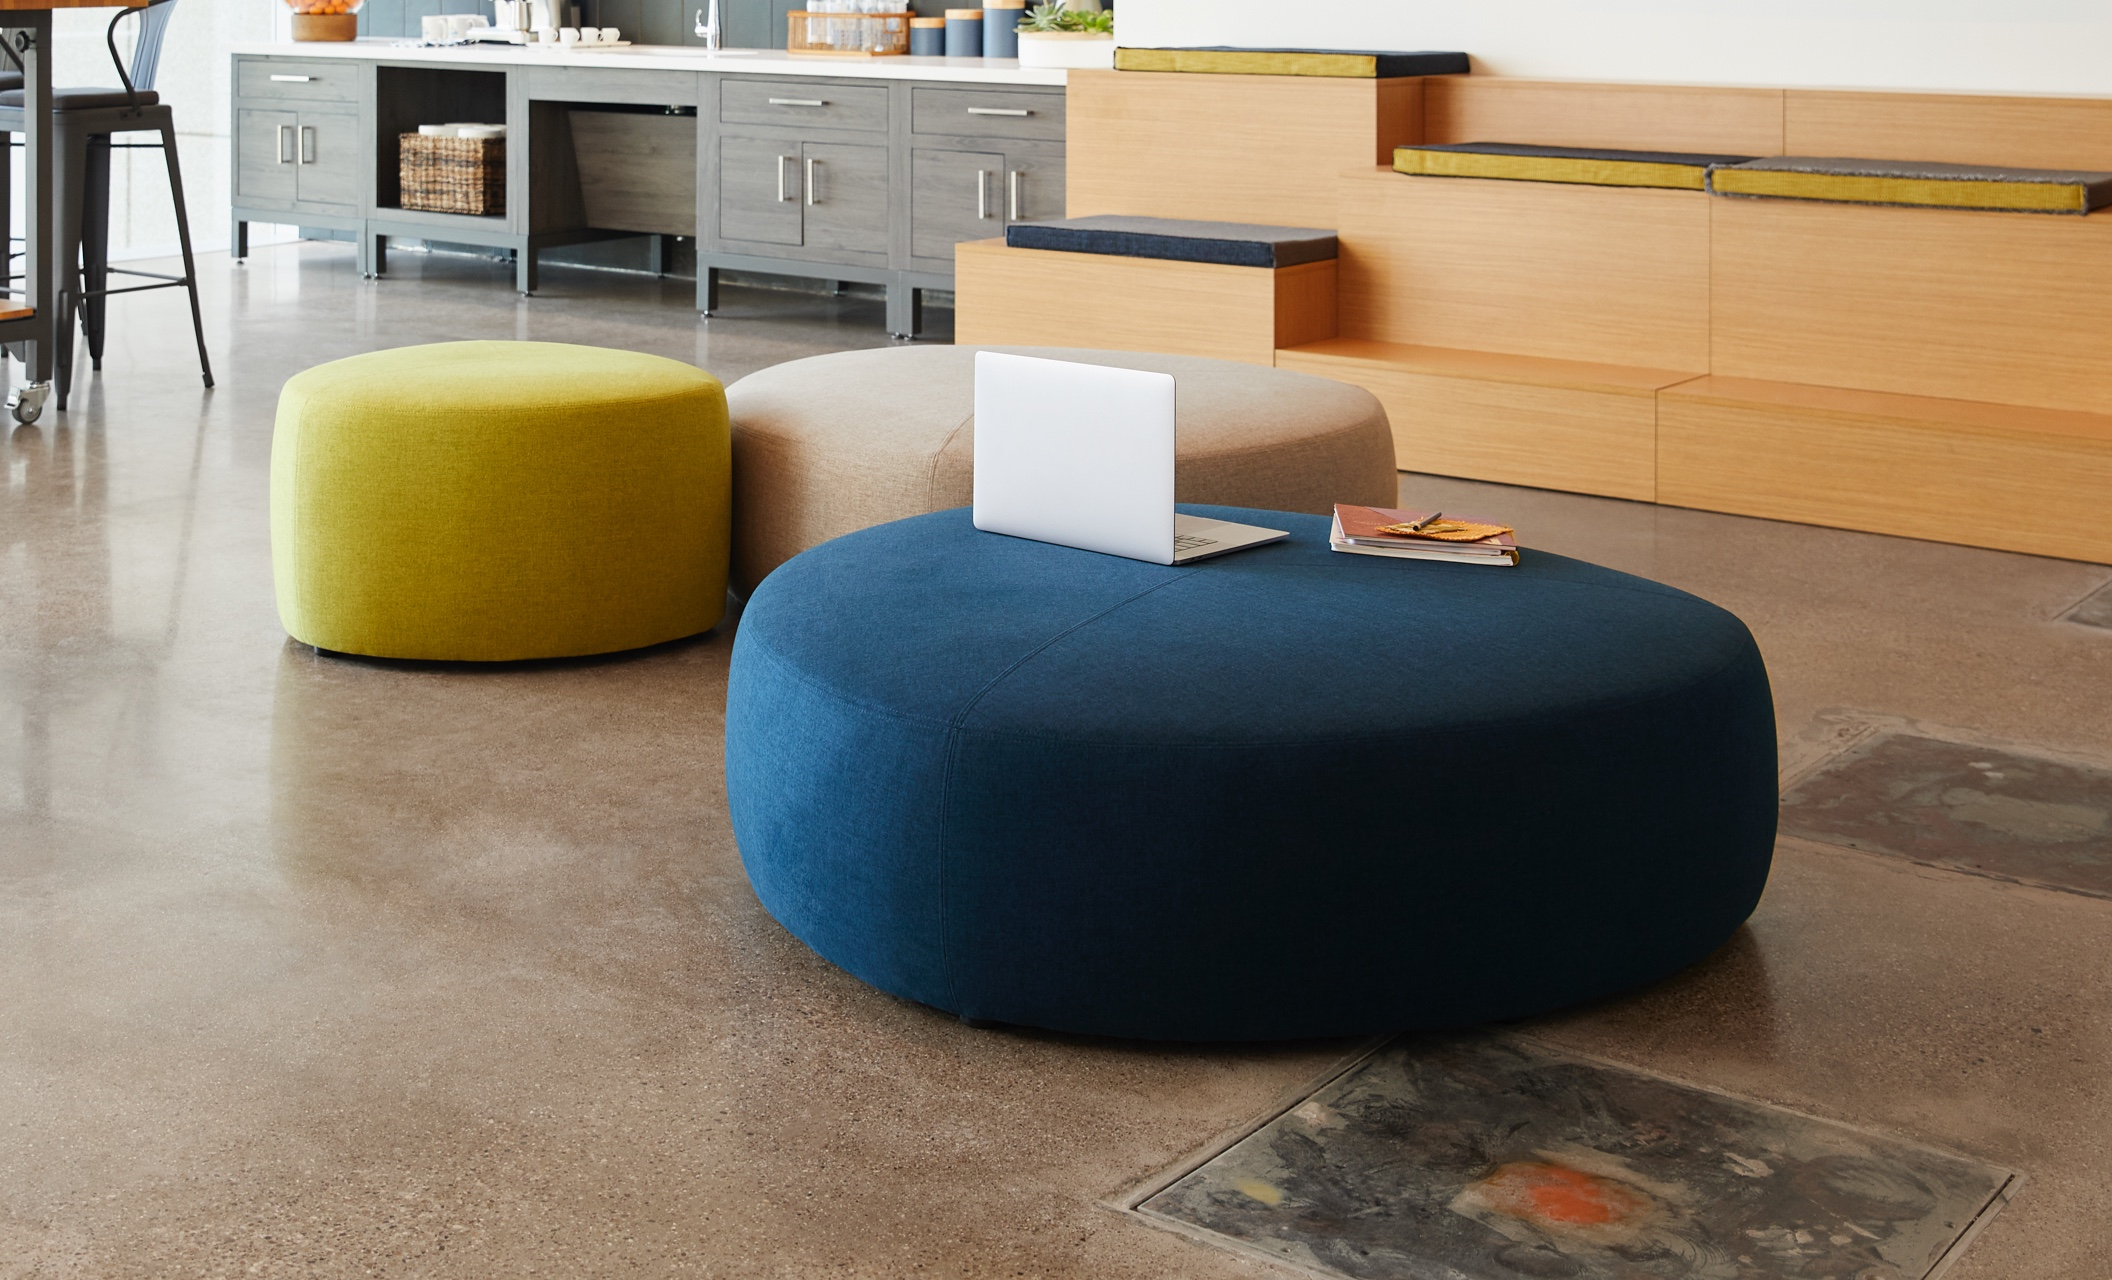 two large ottomans and one small ottoman appear in office setting